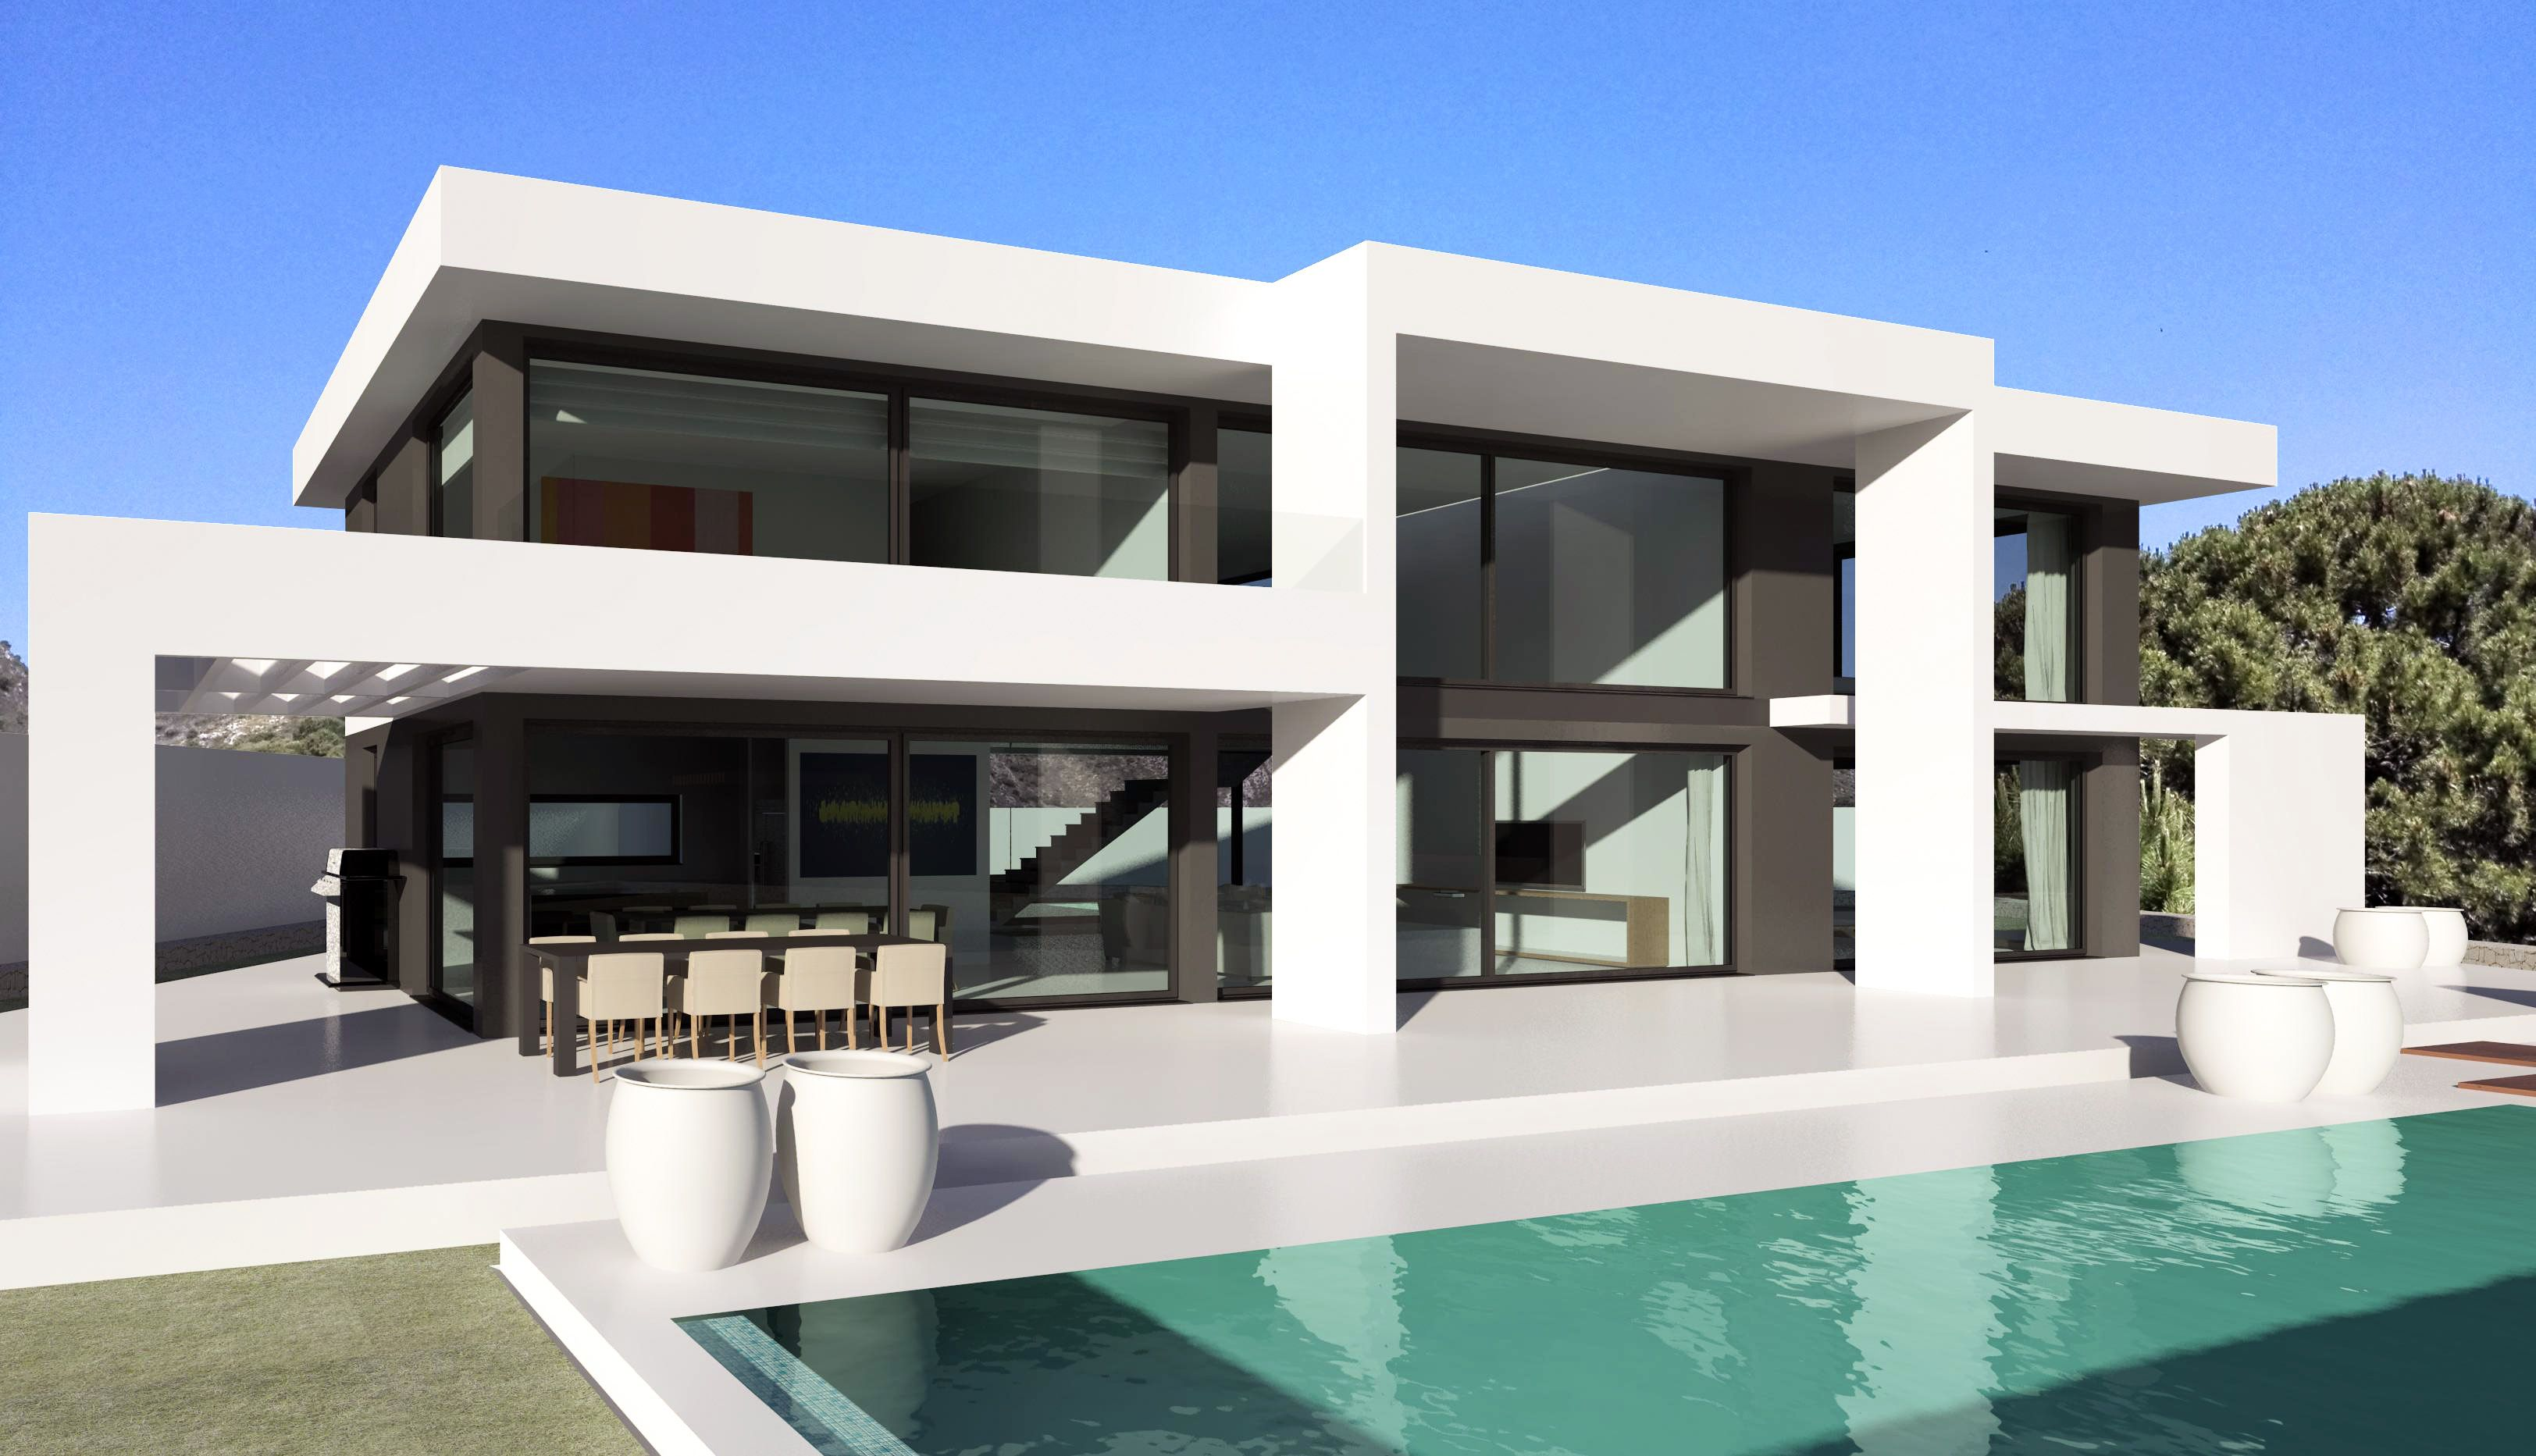 Modern turnkey villas in spain france portugal for Modern minimalist architecture